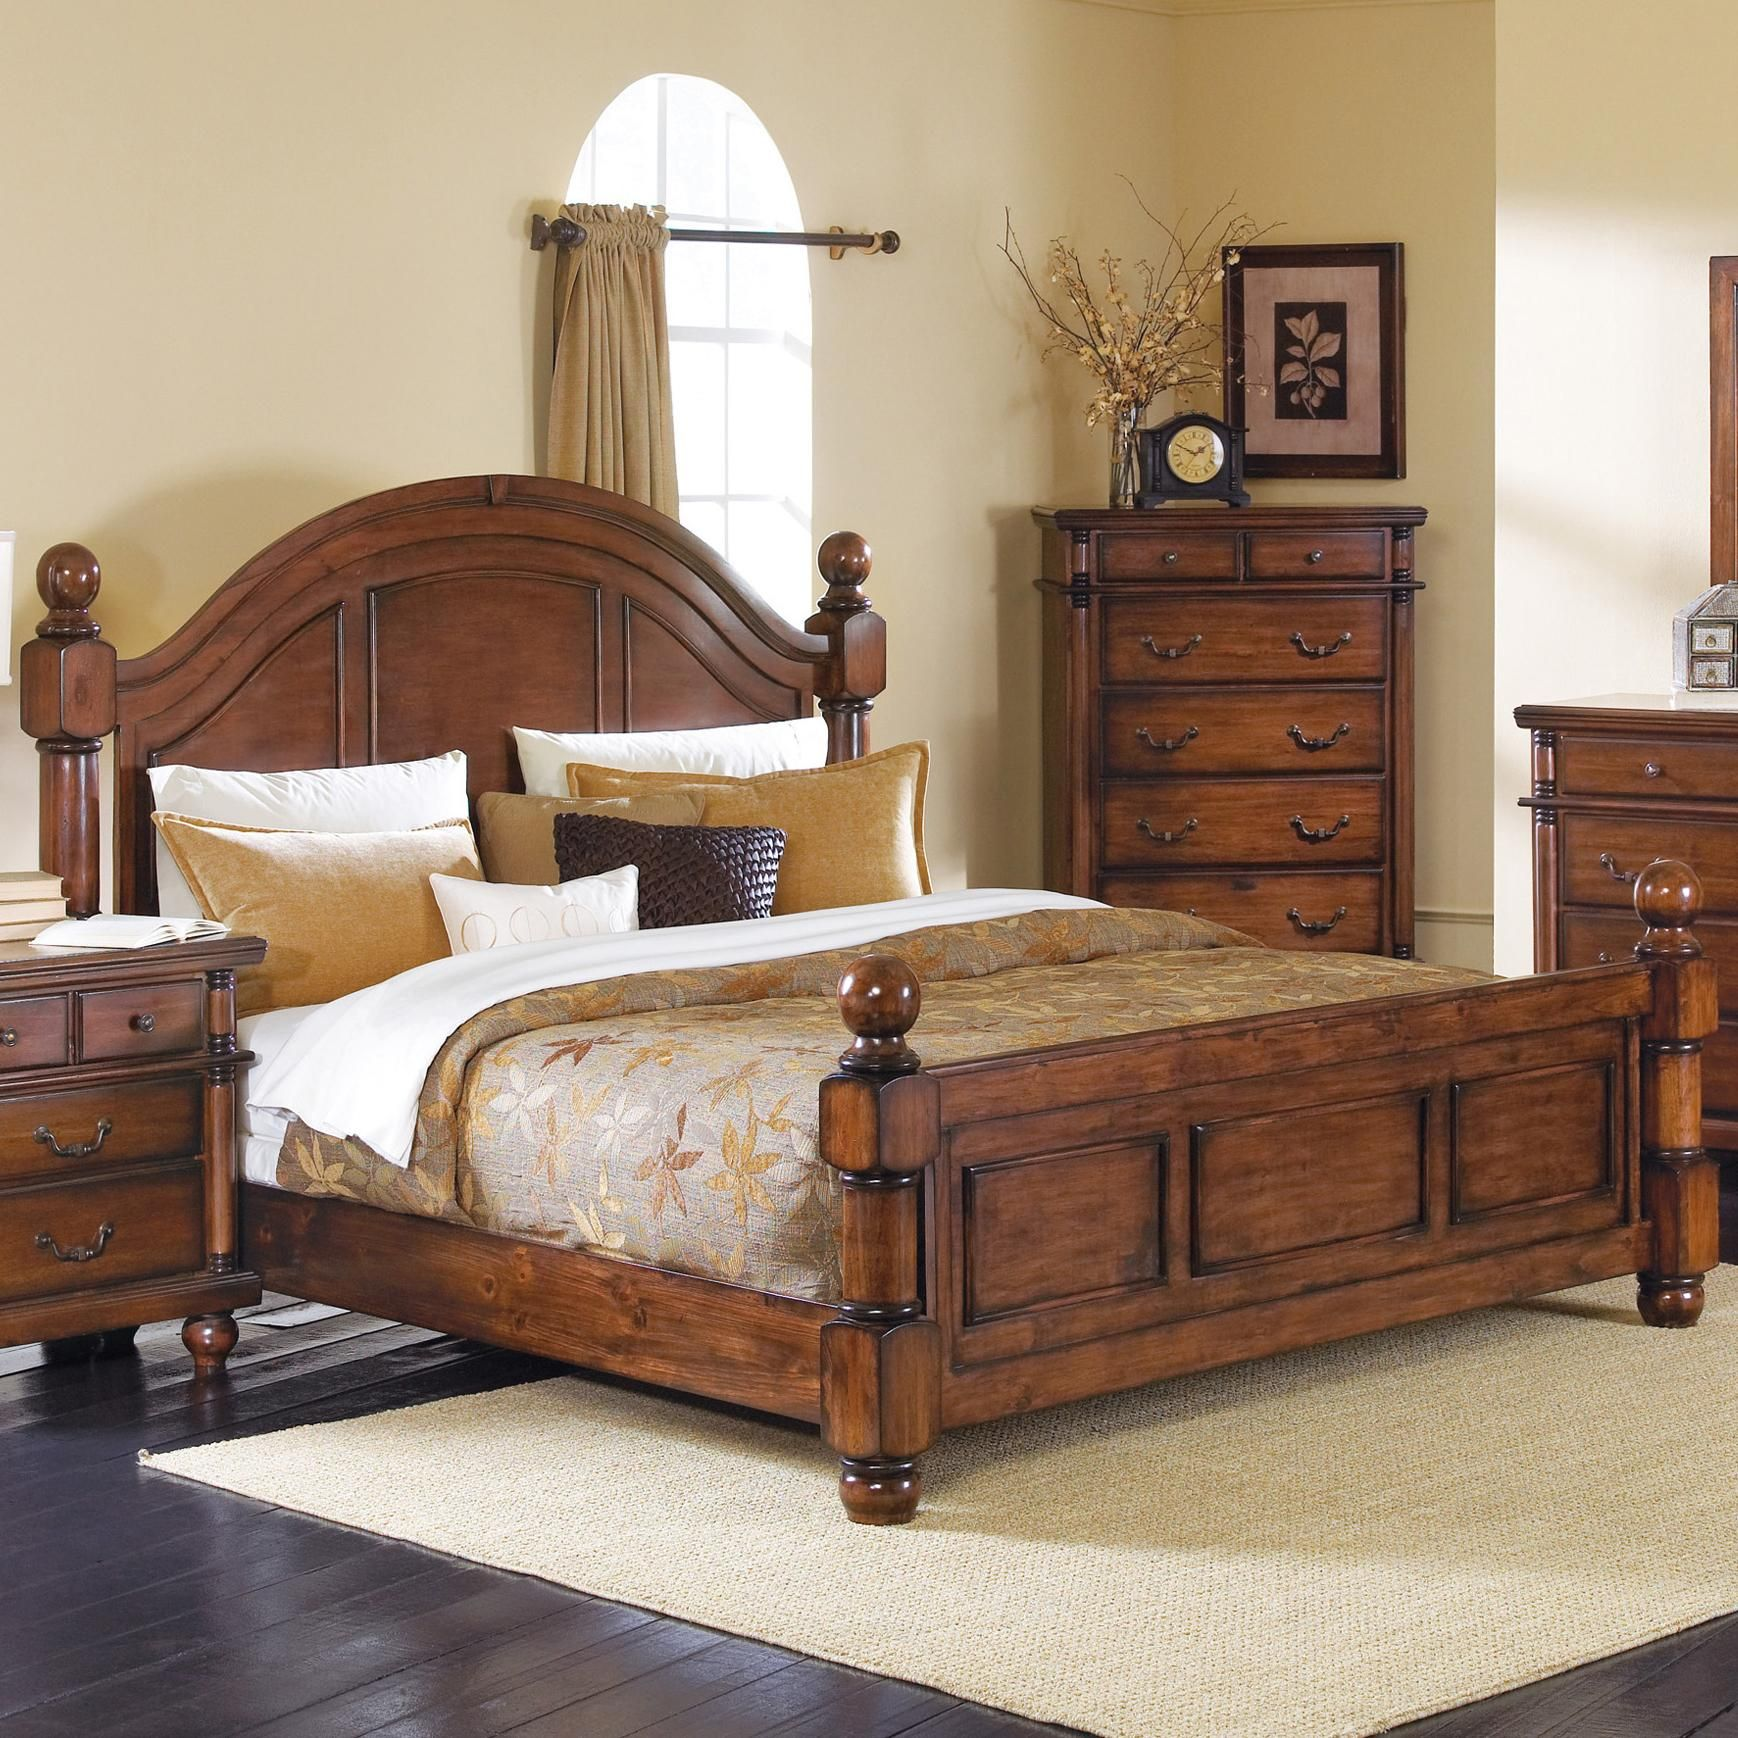 Augusta Cal King Bed by Crown Mark | Bedroom furniture | Pinterest ...